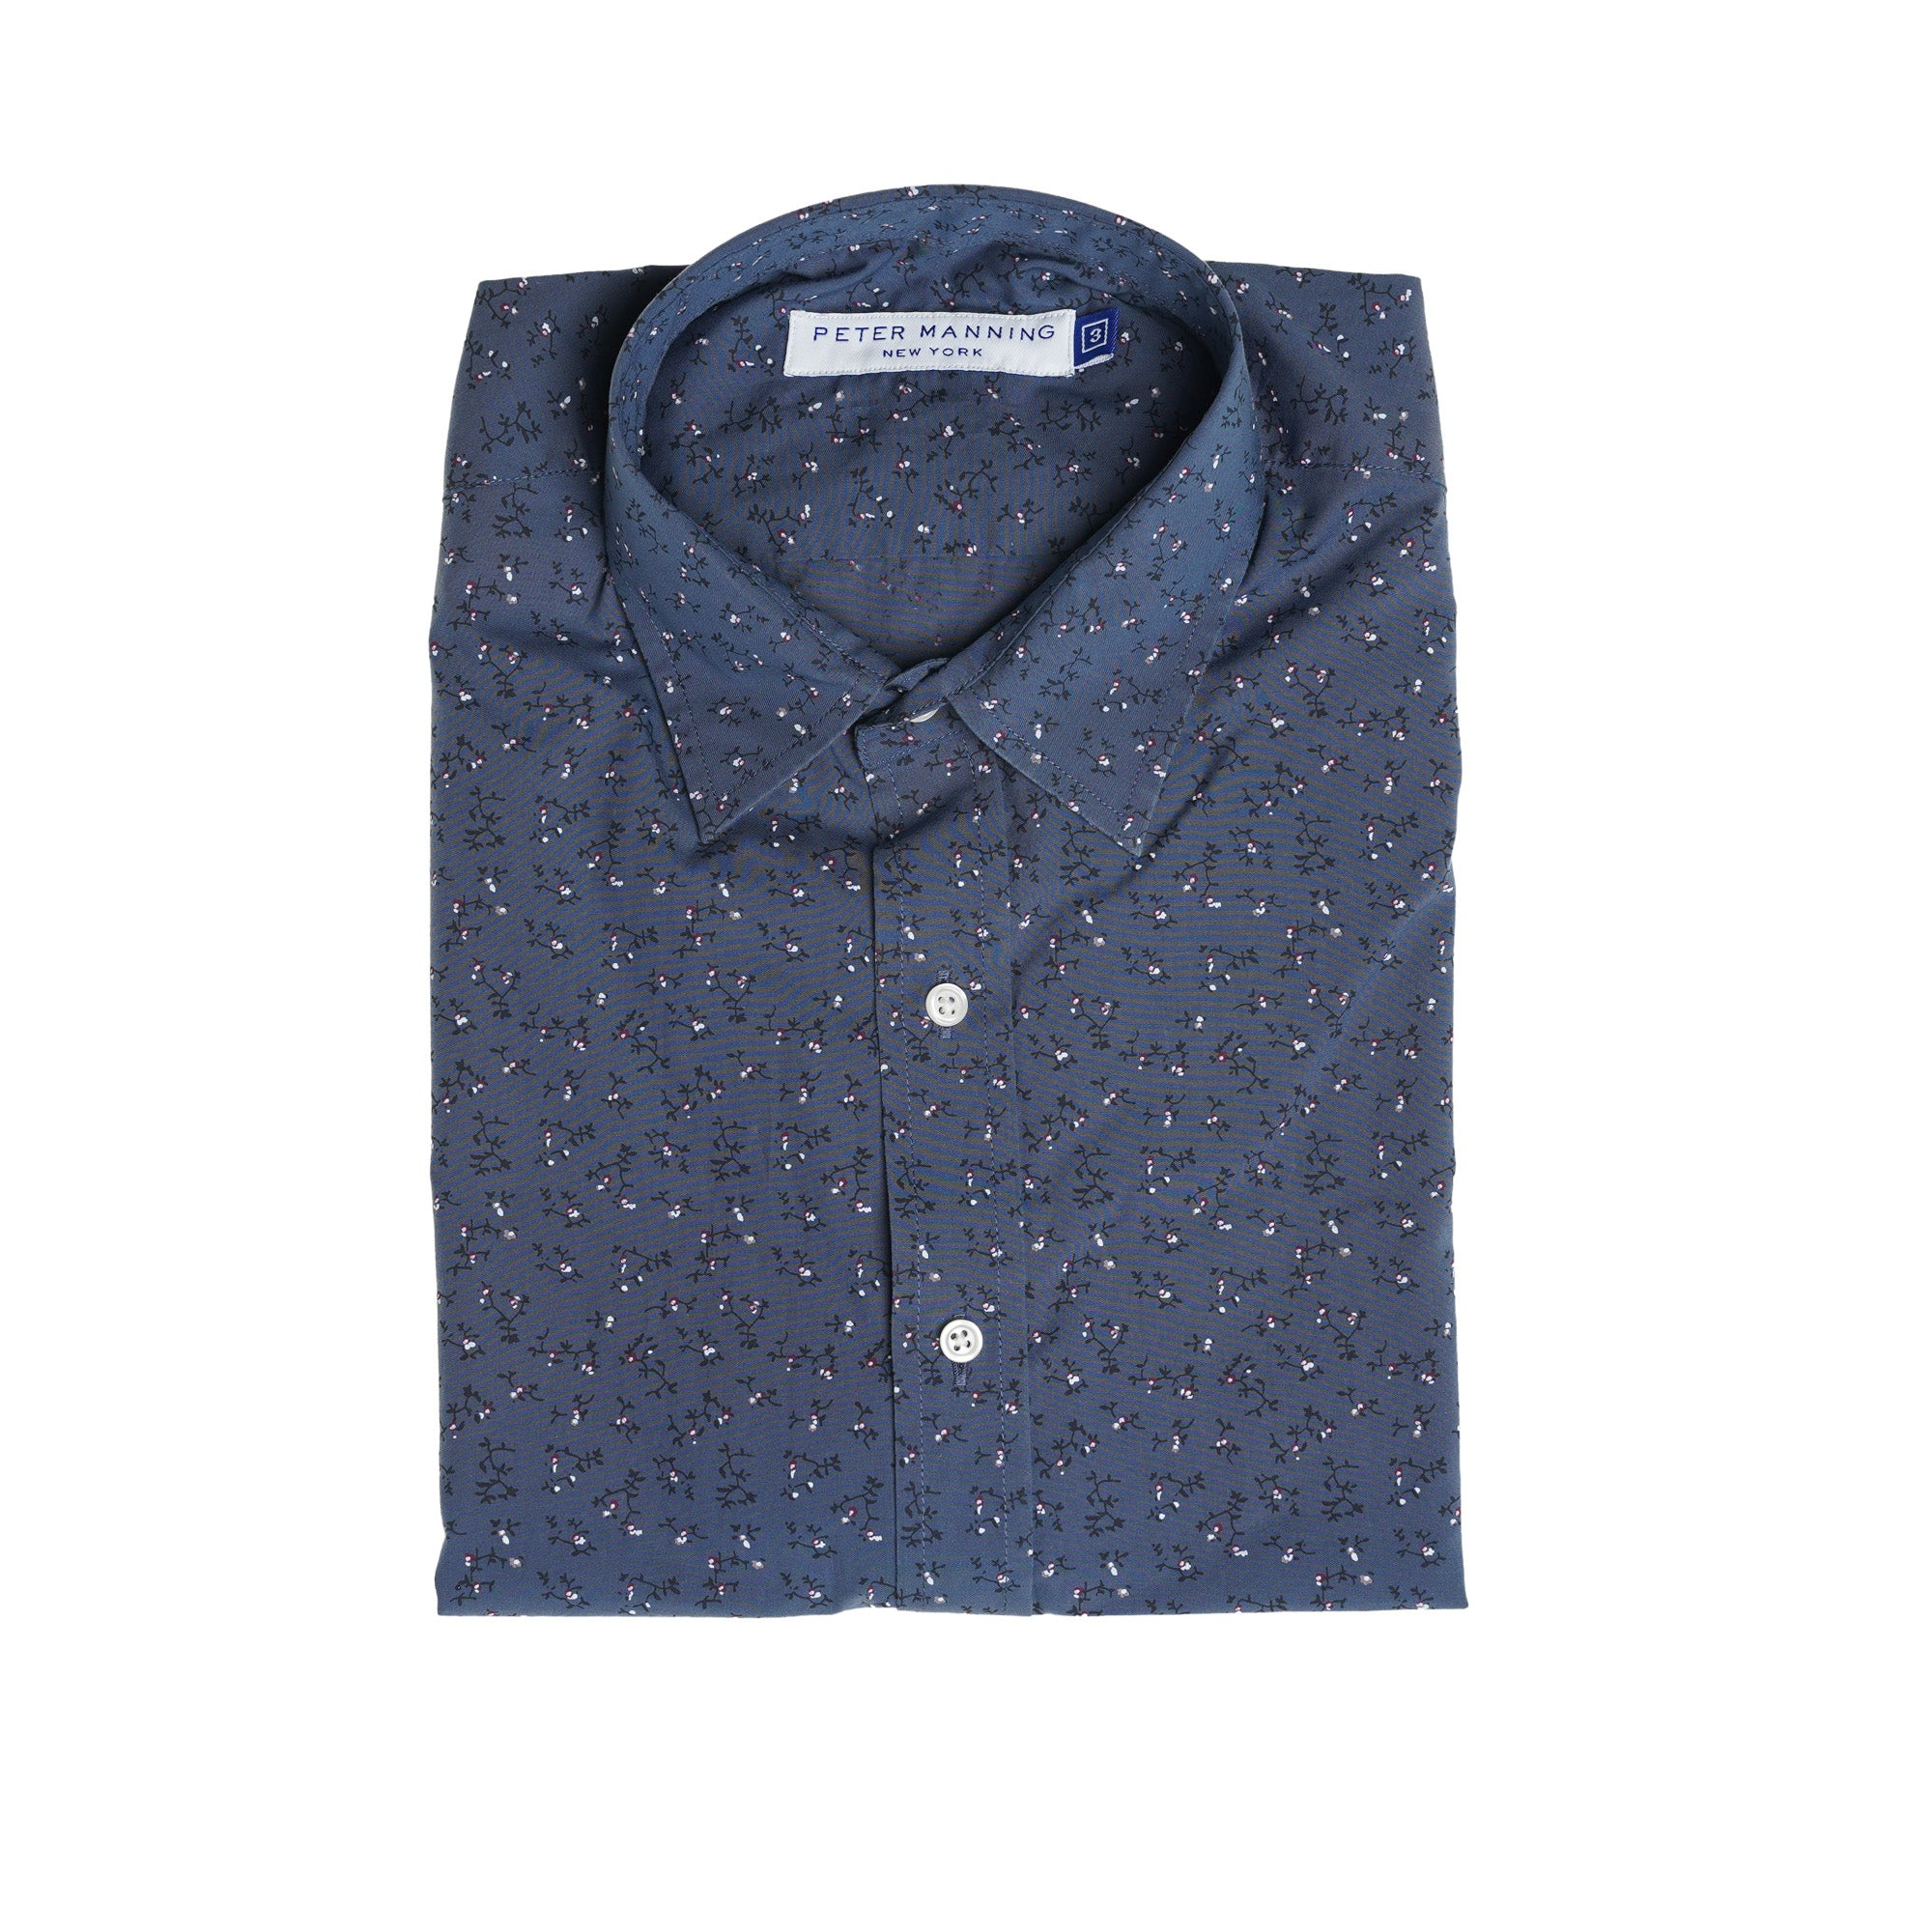 Weekend Printed Shirt Standard Fit - Indigo Floral